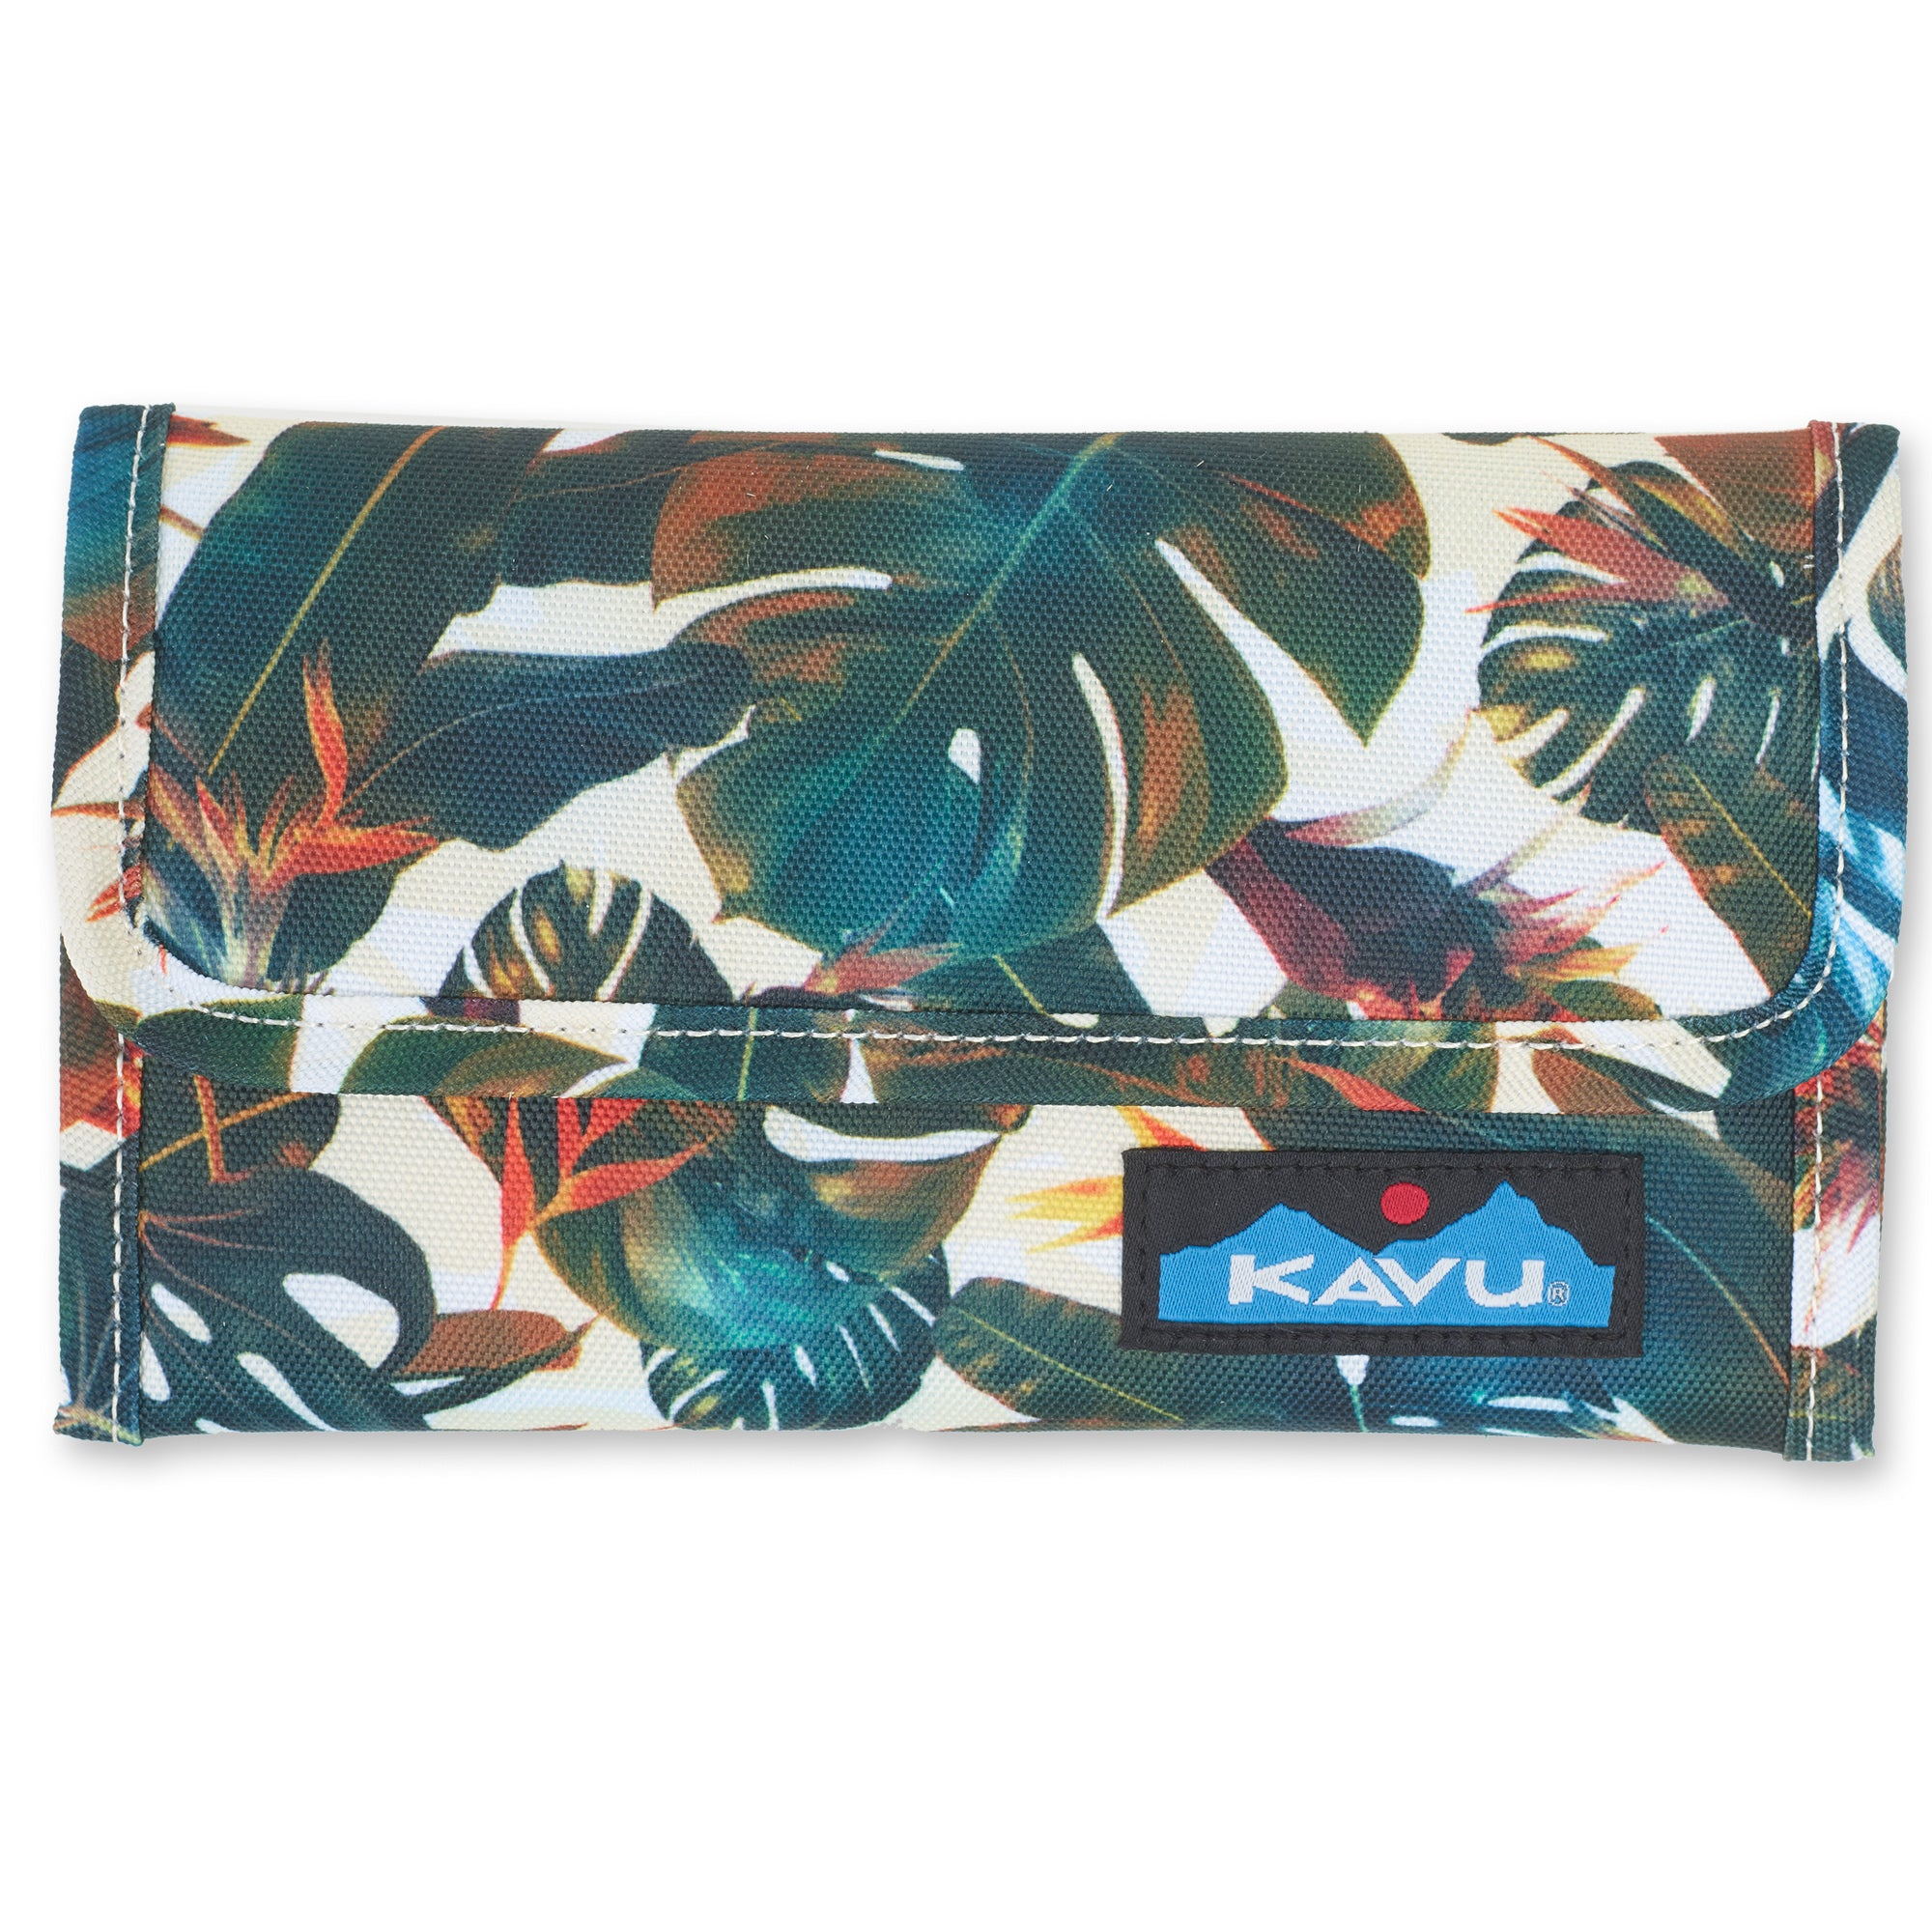 KAVU Mondo Spender Wallet - Final Sale